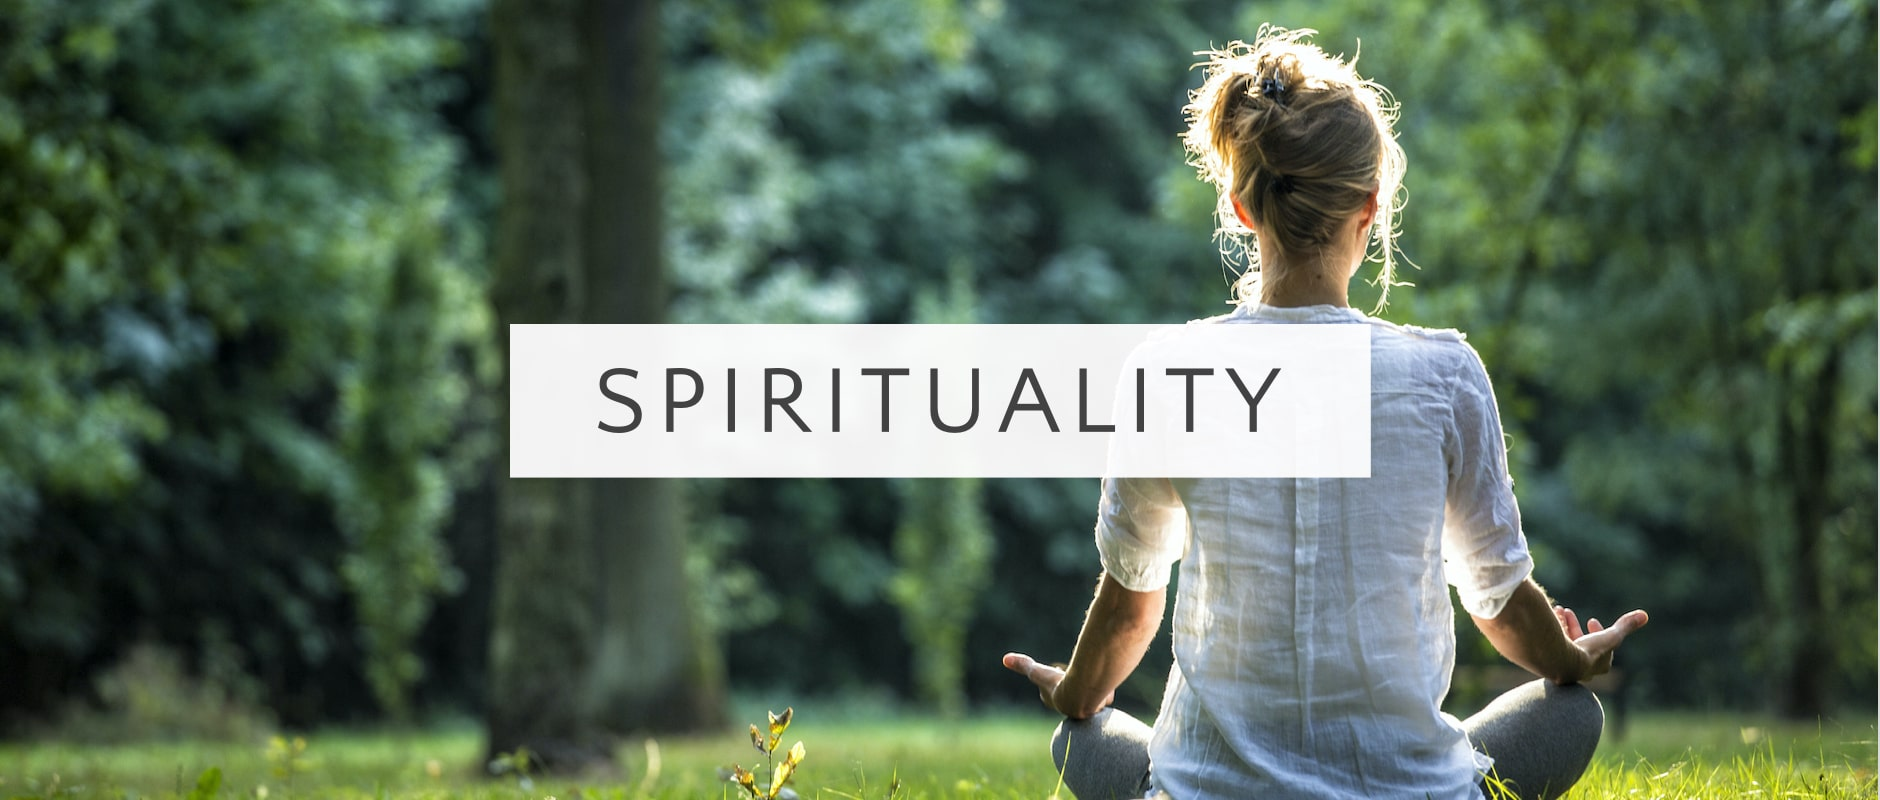 A photo of a woman meditating and a label saying Spirituality